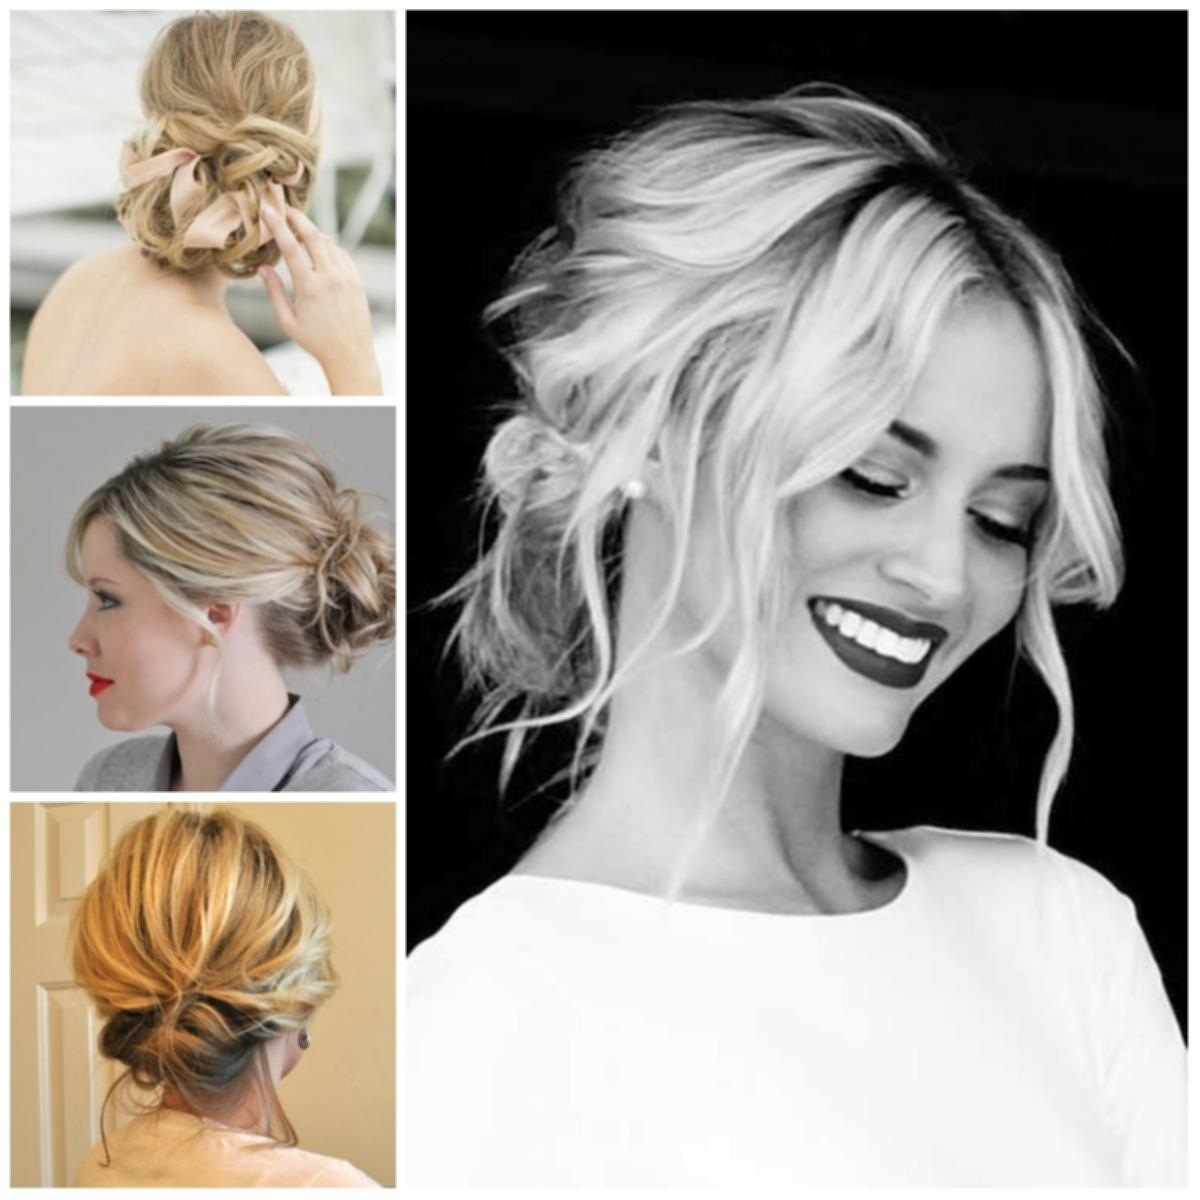 Updo Hairstyles For Medium Hair Best Updos For Medium Length Hair With Regard To Updo Hairstyles For Shoulder Length Hair (Gallery 10 of 15)